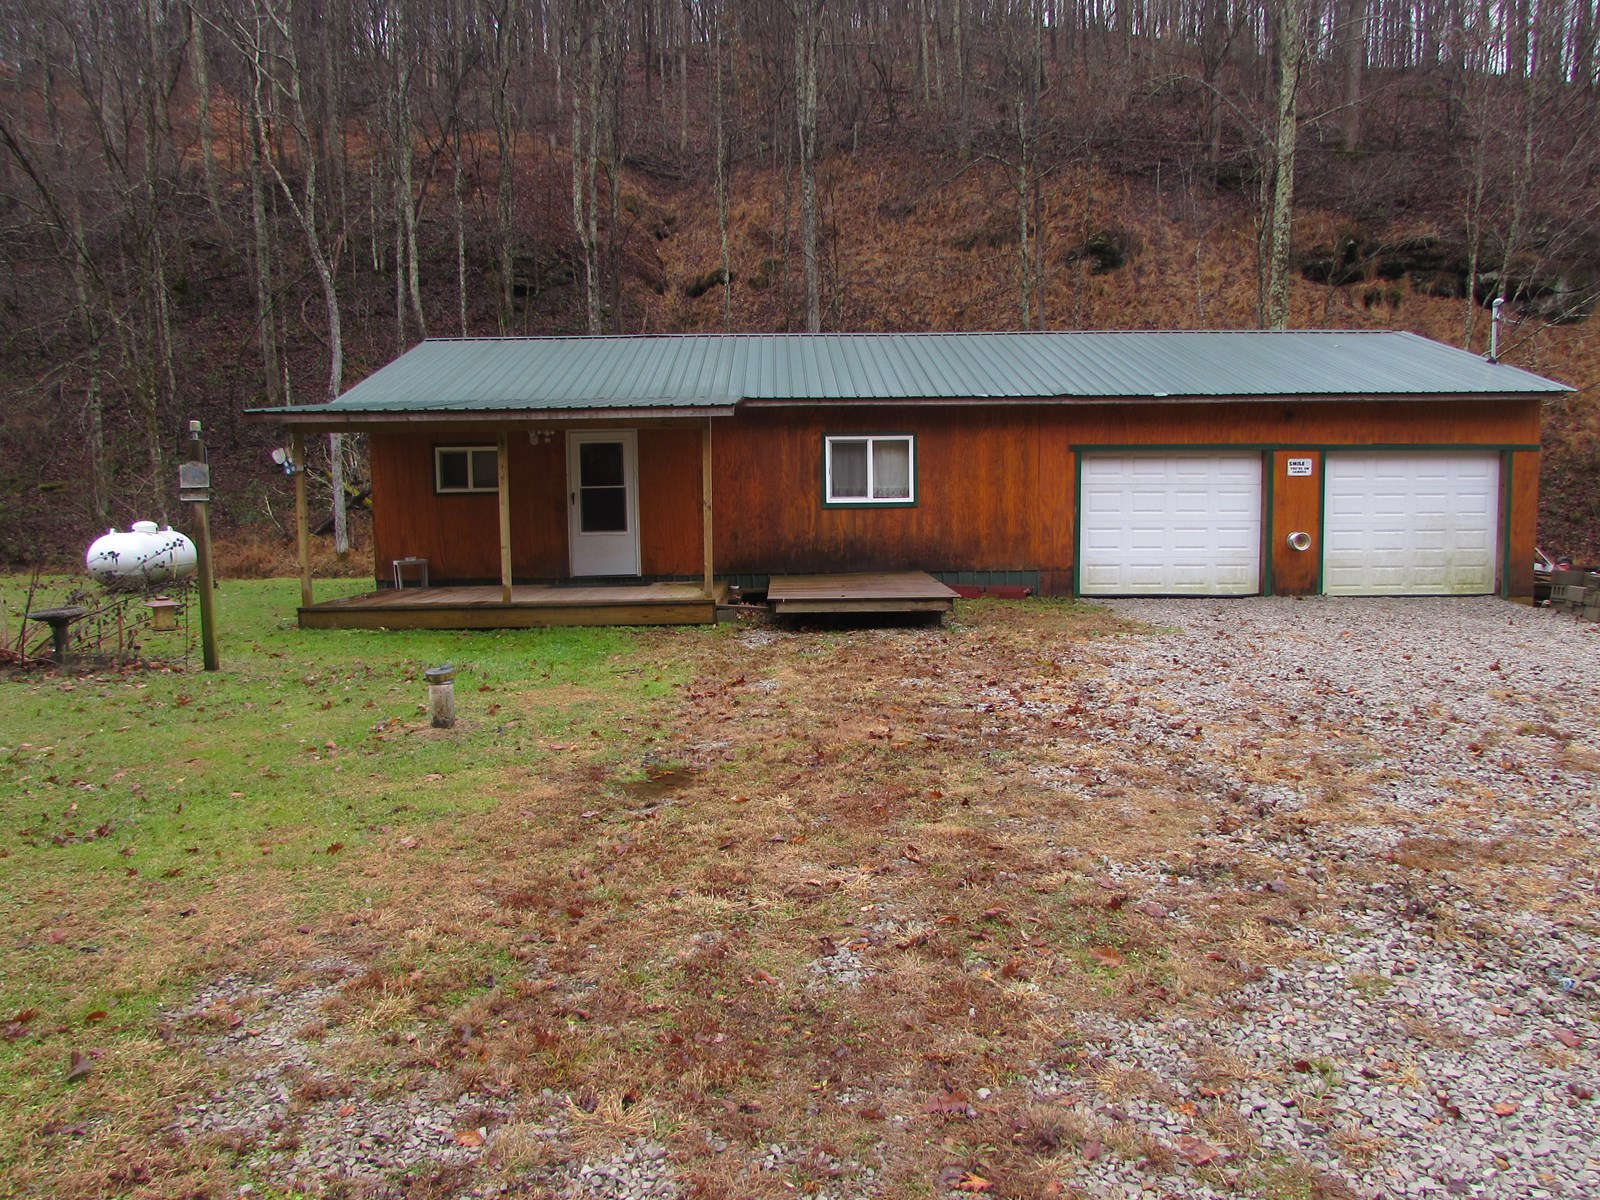 ONE BEDROOM BUNGALOW LOCATED IN DODDRIDGE COUNTY, WV